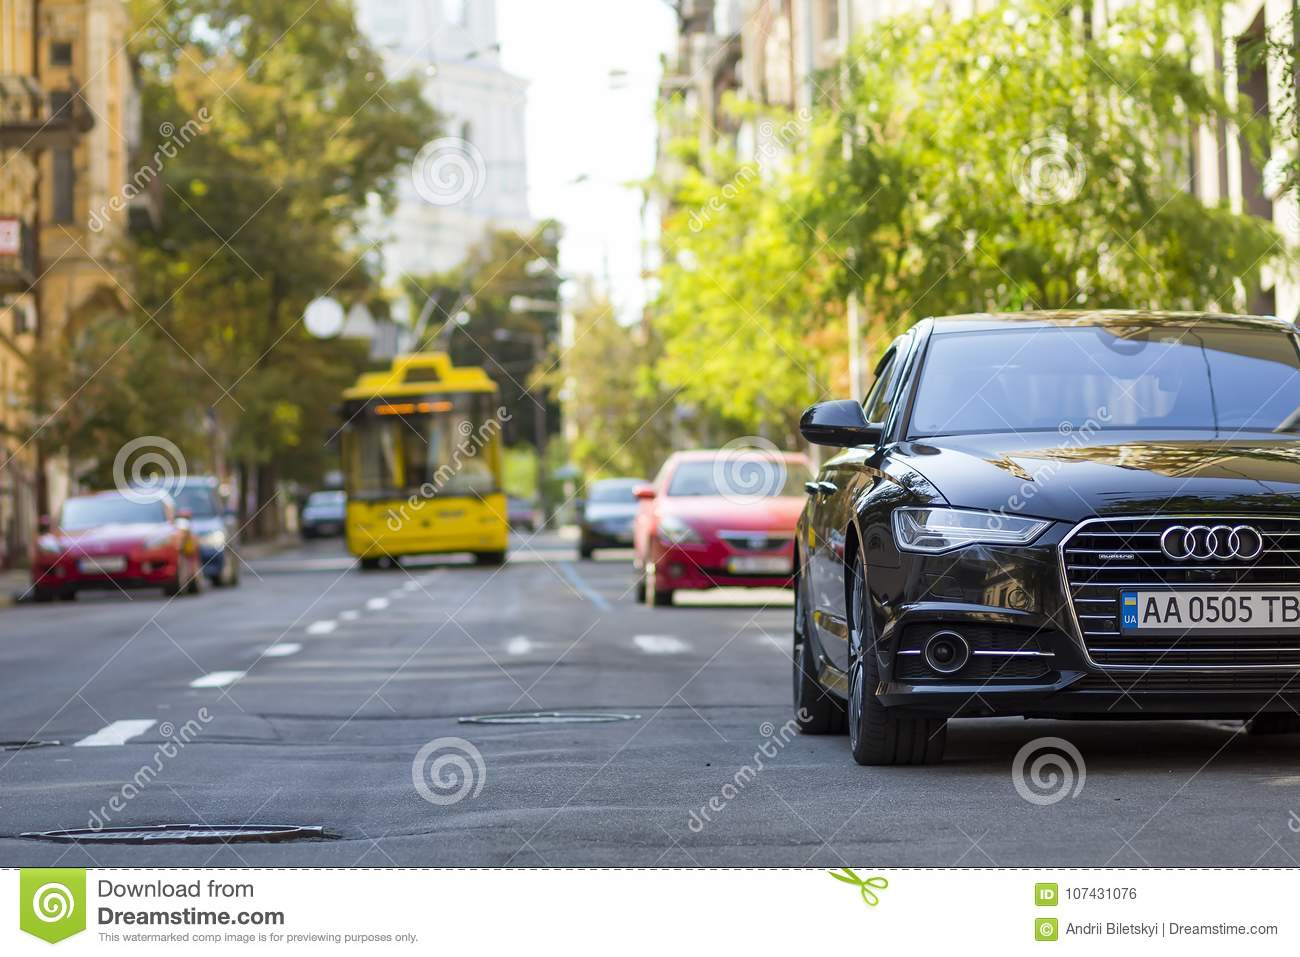 Kyiv, Ukraine - November 12, 2017: Modern new car on the side of